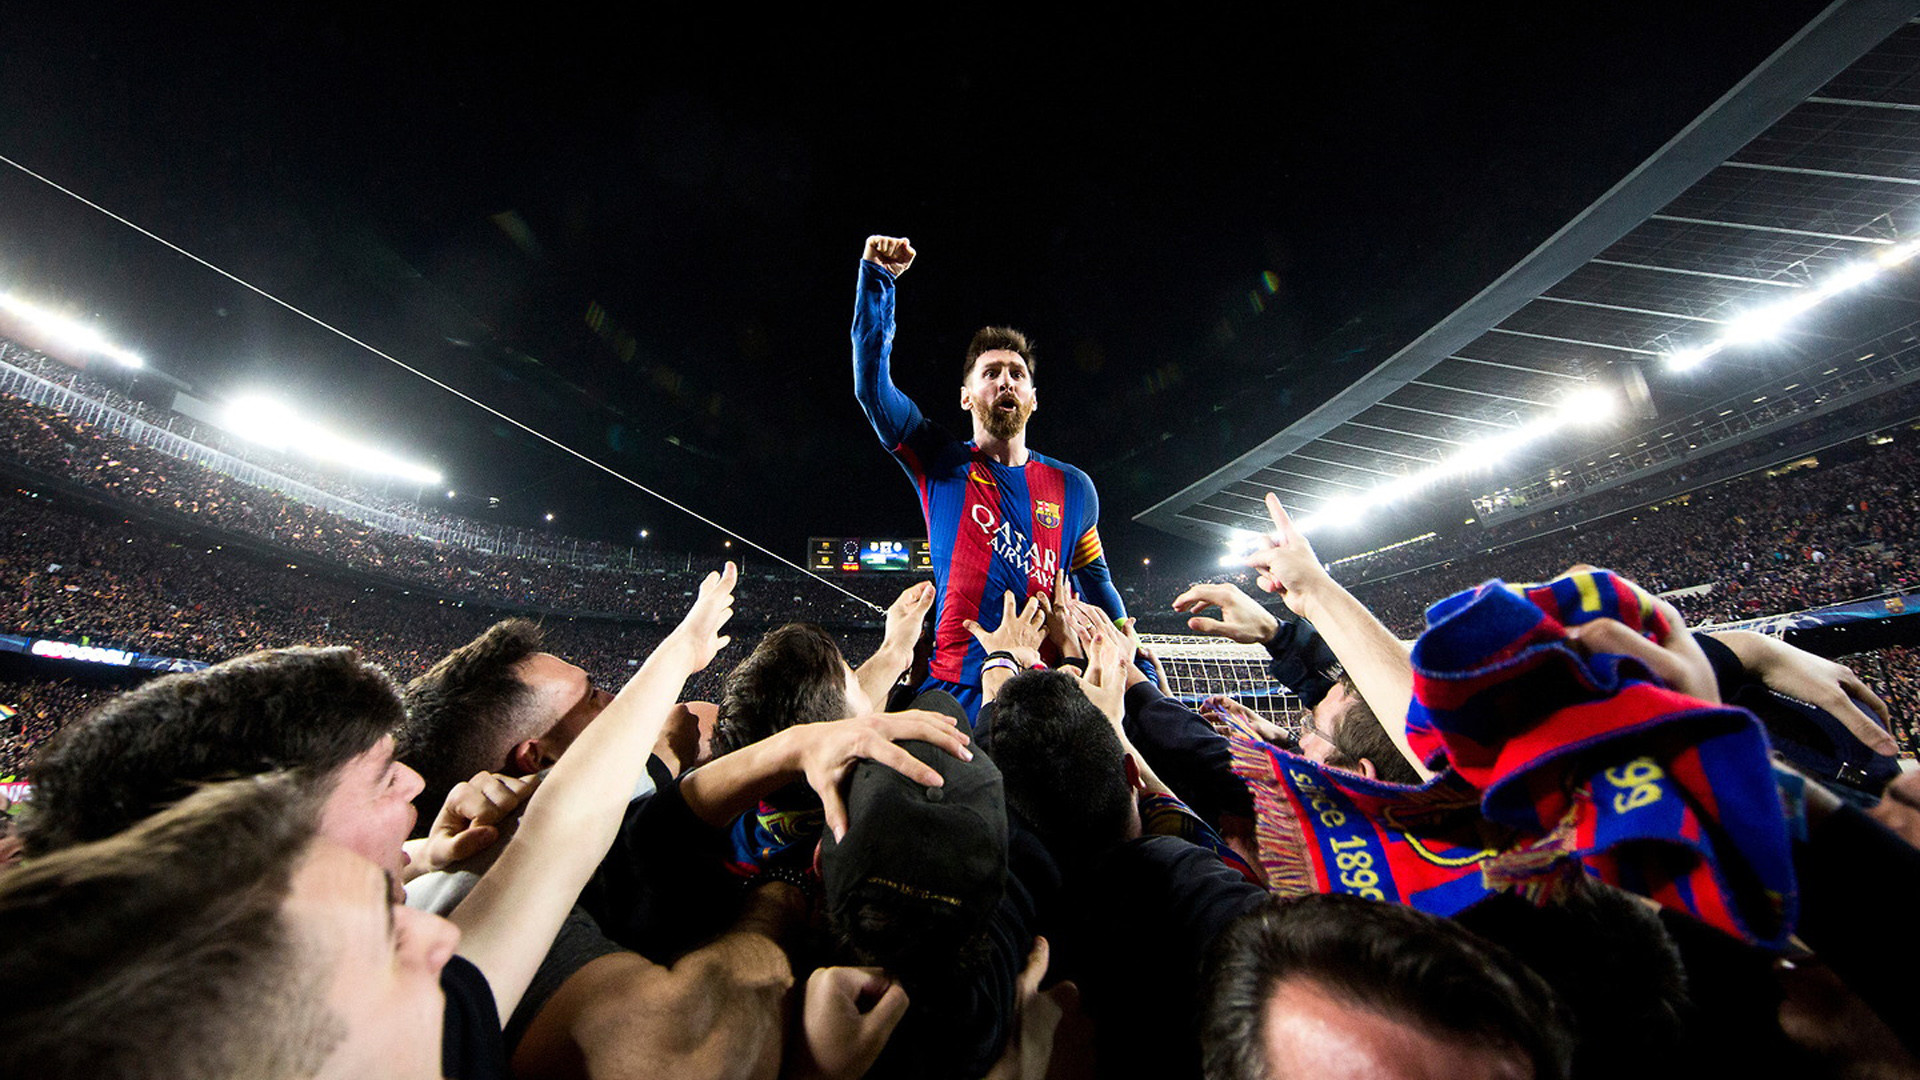 1920x1080 messi barcelona paris psg 6 1 champions wallpaper